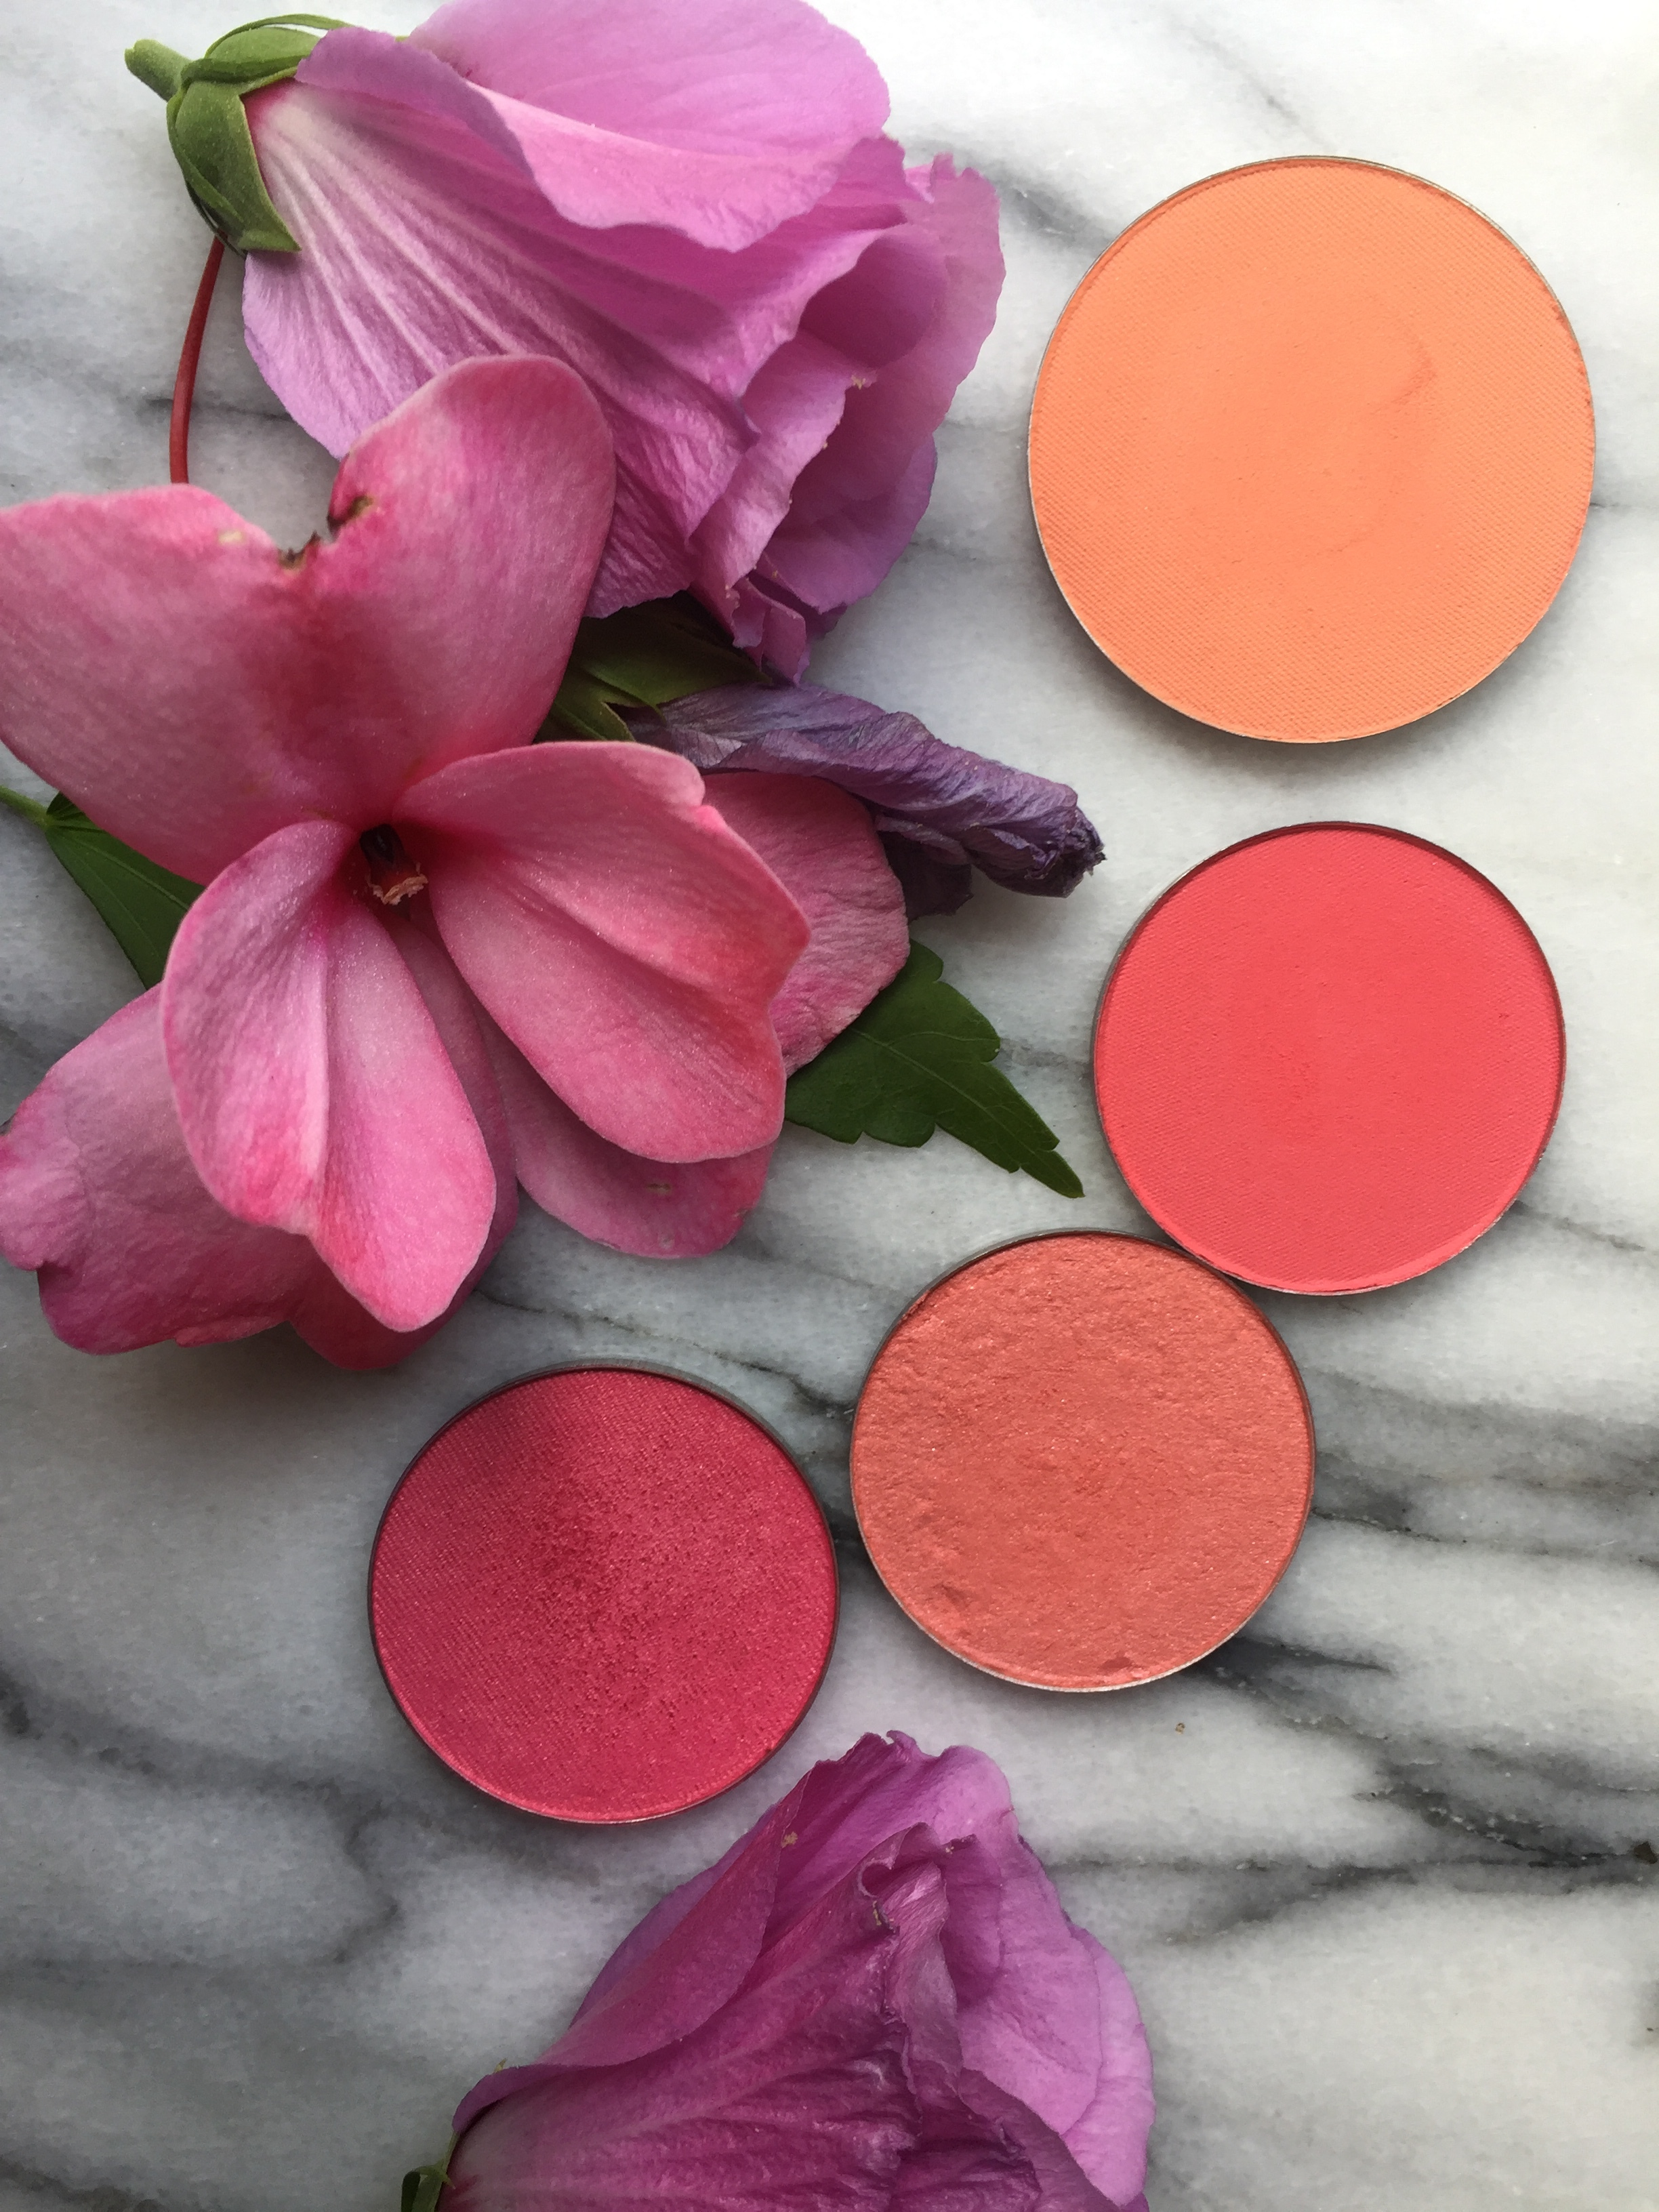 Peach and Coral | Makeup Geek Summer Fling, La Femme Golden Rose, Coral and Peach Sparkle